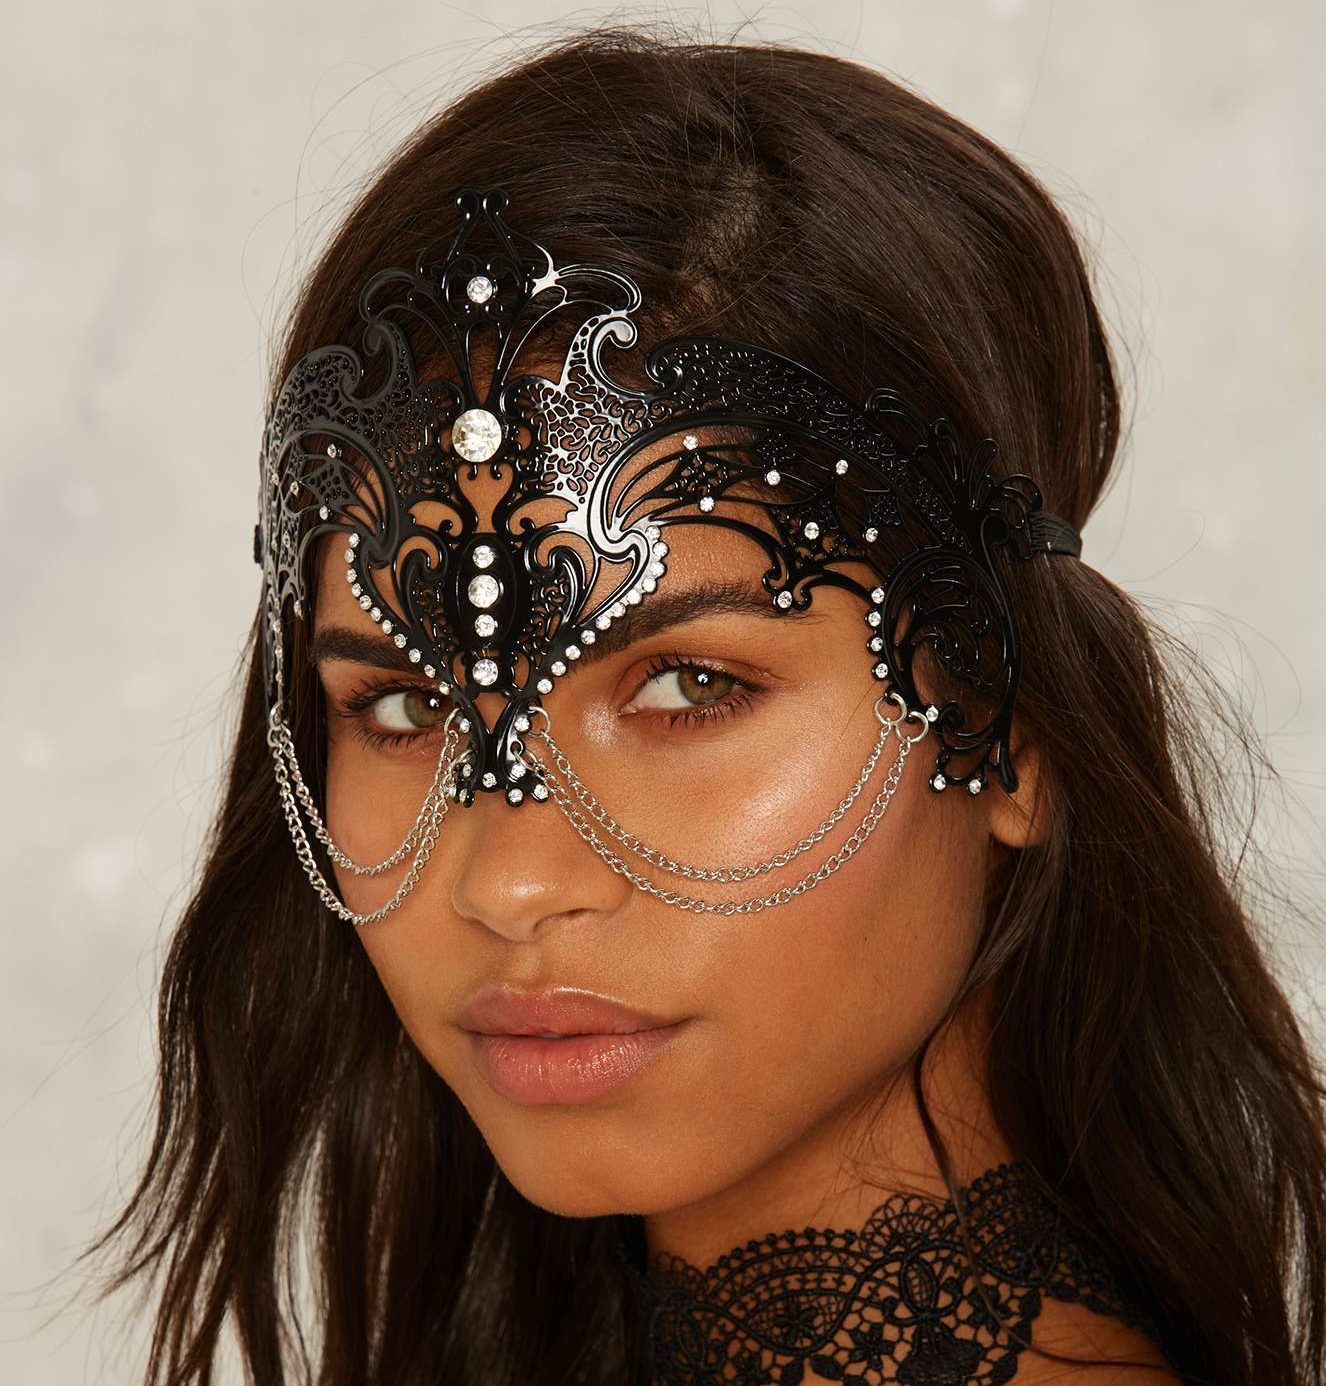 1 nasty gal archrival cutout mask - Mystical Halloween Costumes